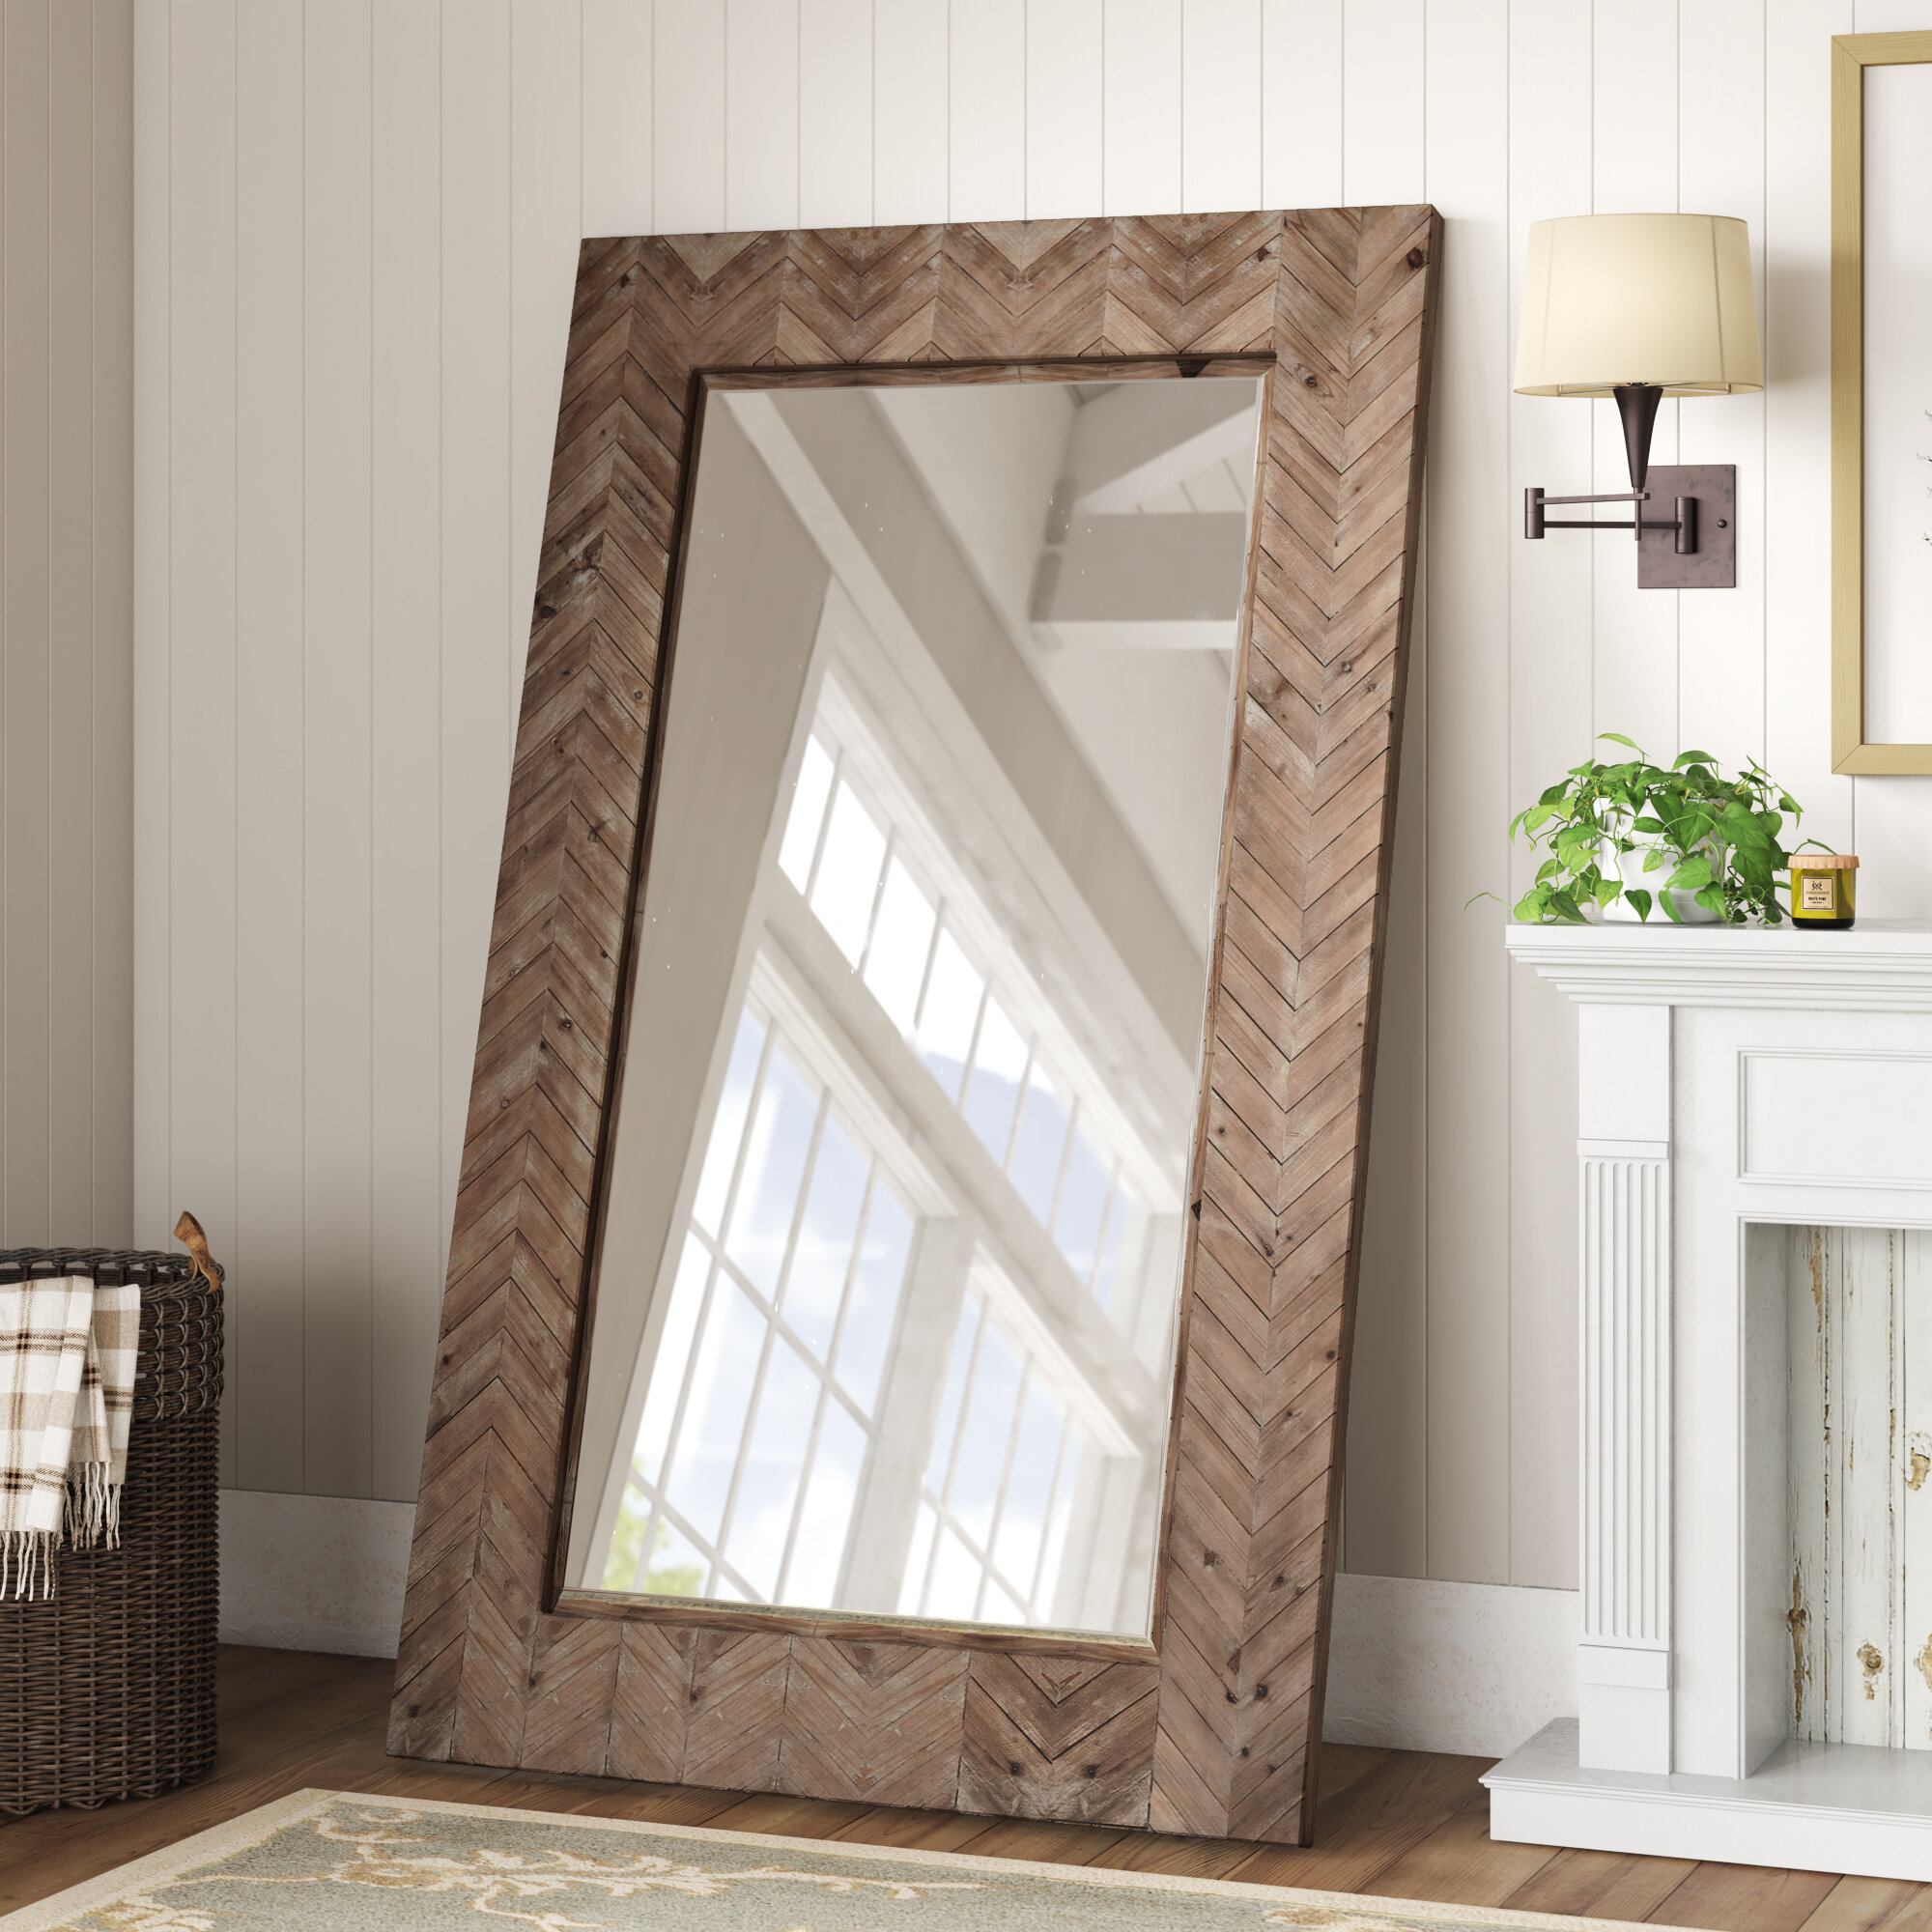 Coastal Beveled Full Length Mirror